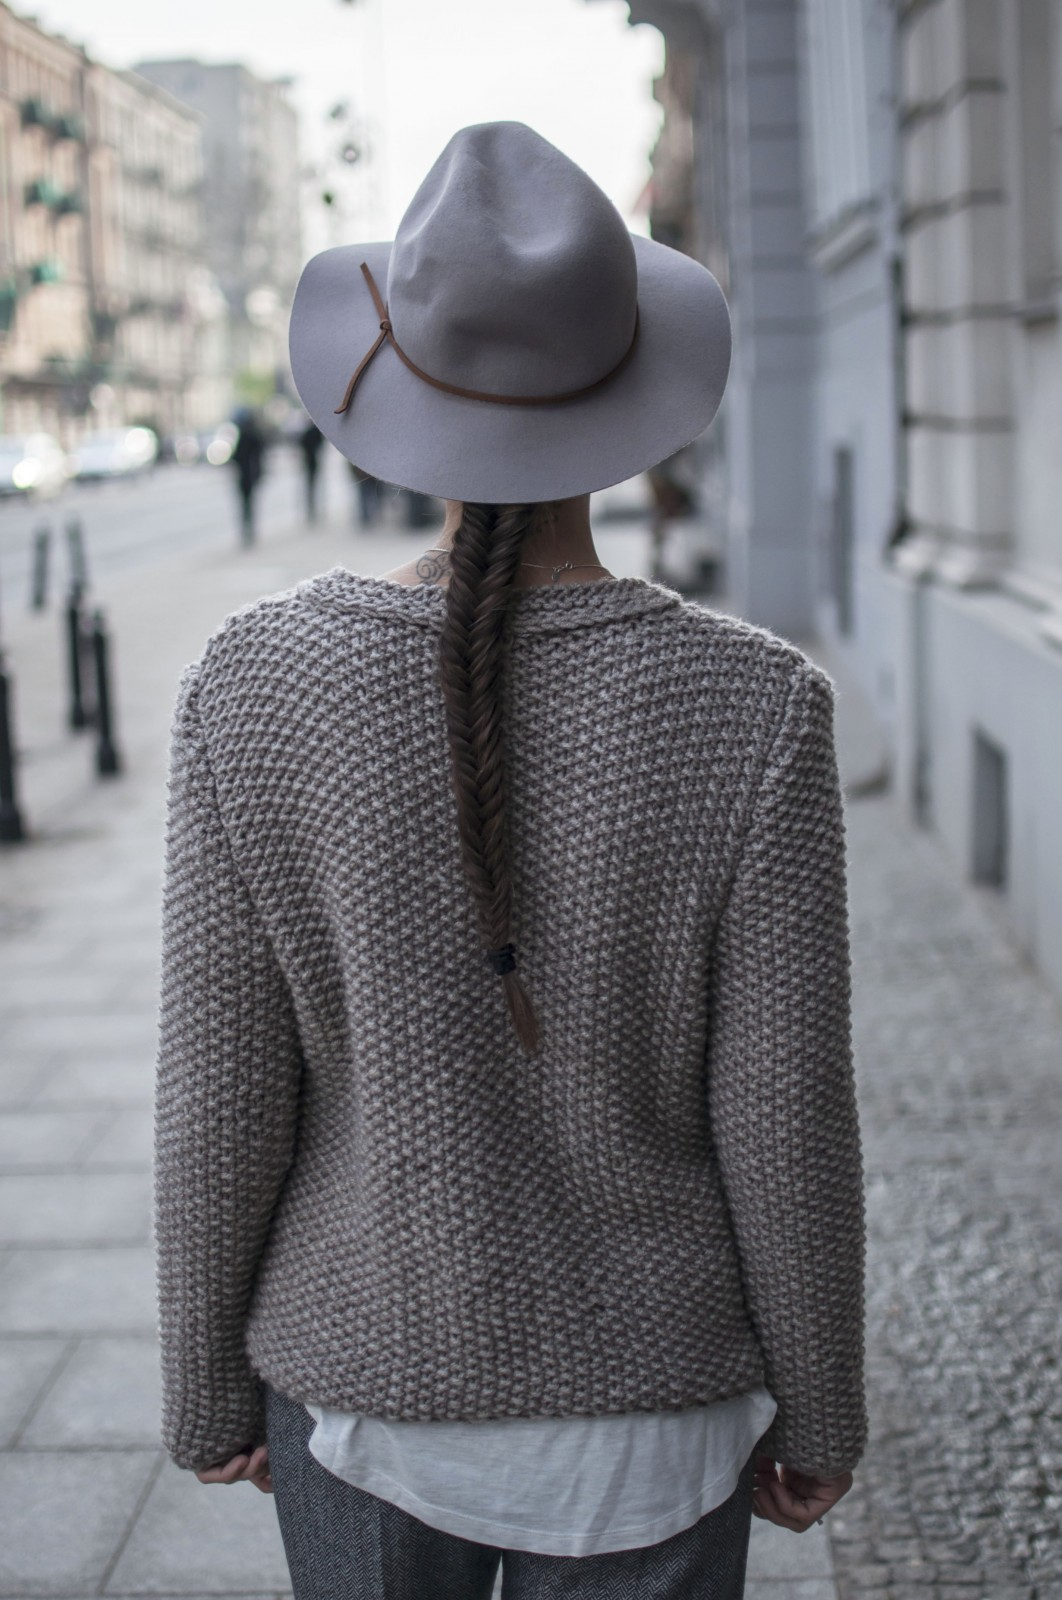 Grey Outfit: Dorota Jawinska is wearing a grey knit jumper from LeBrand and the grey hat is from River Island